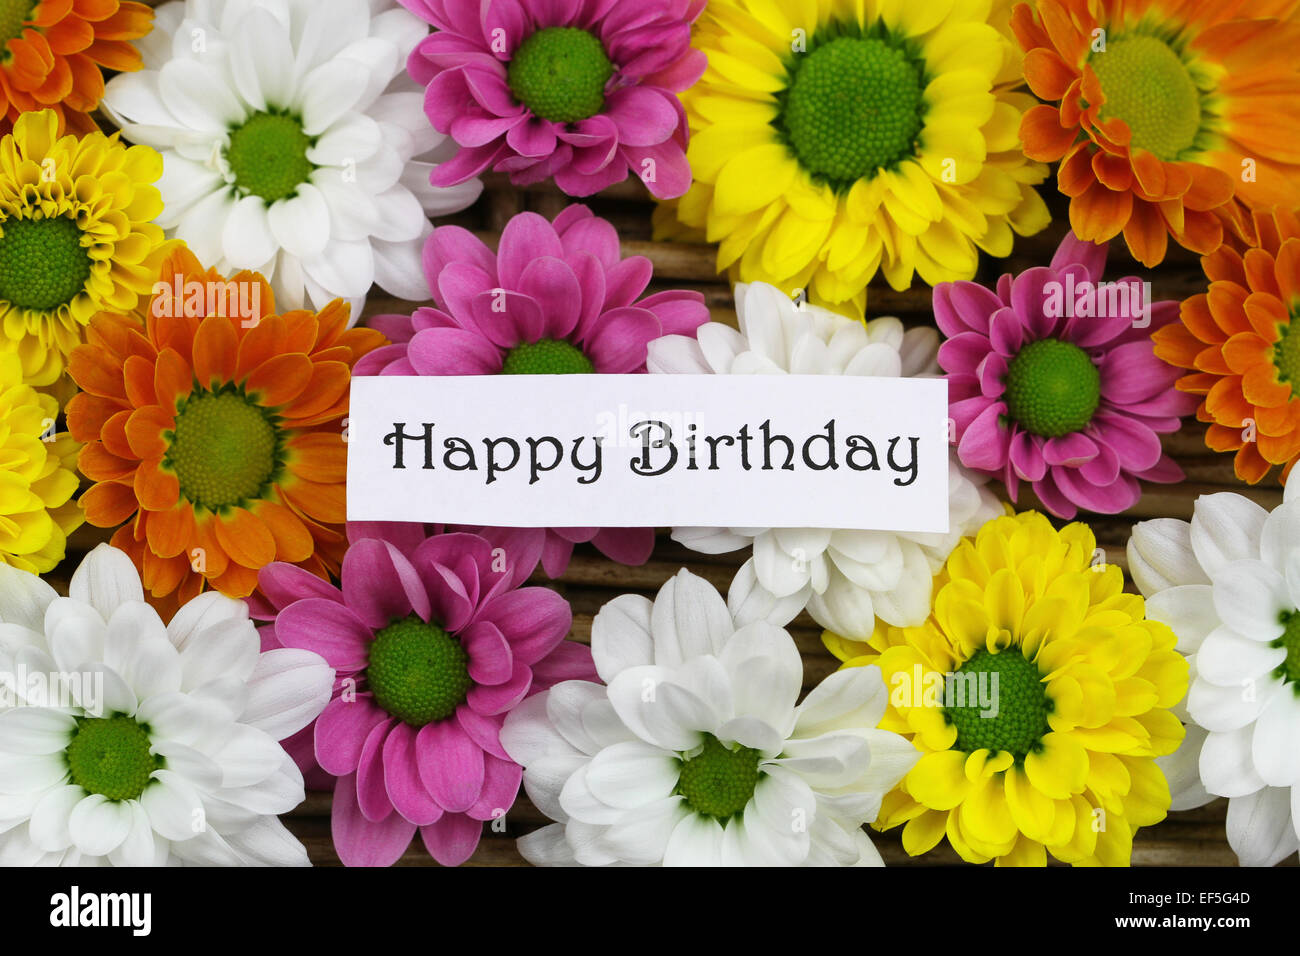 happy birthday card with colorful santini flowers stock photo, Birthday card